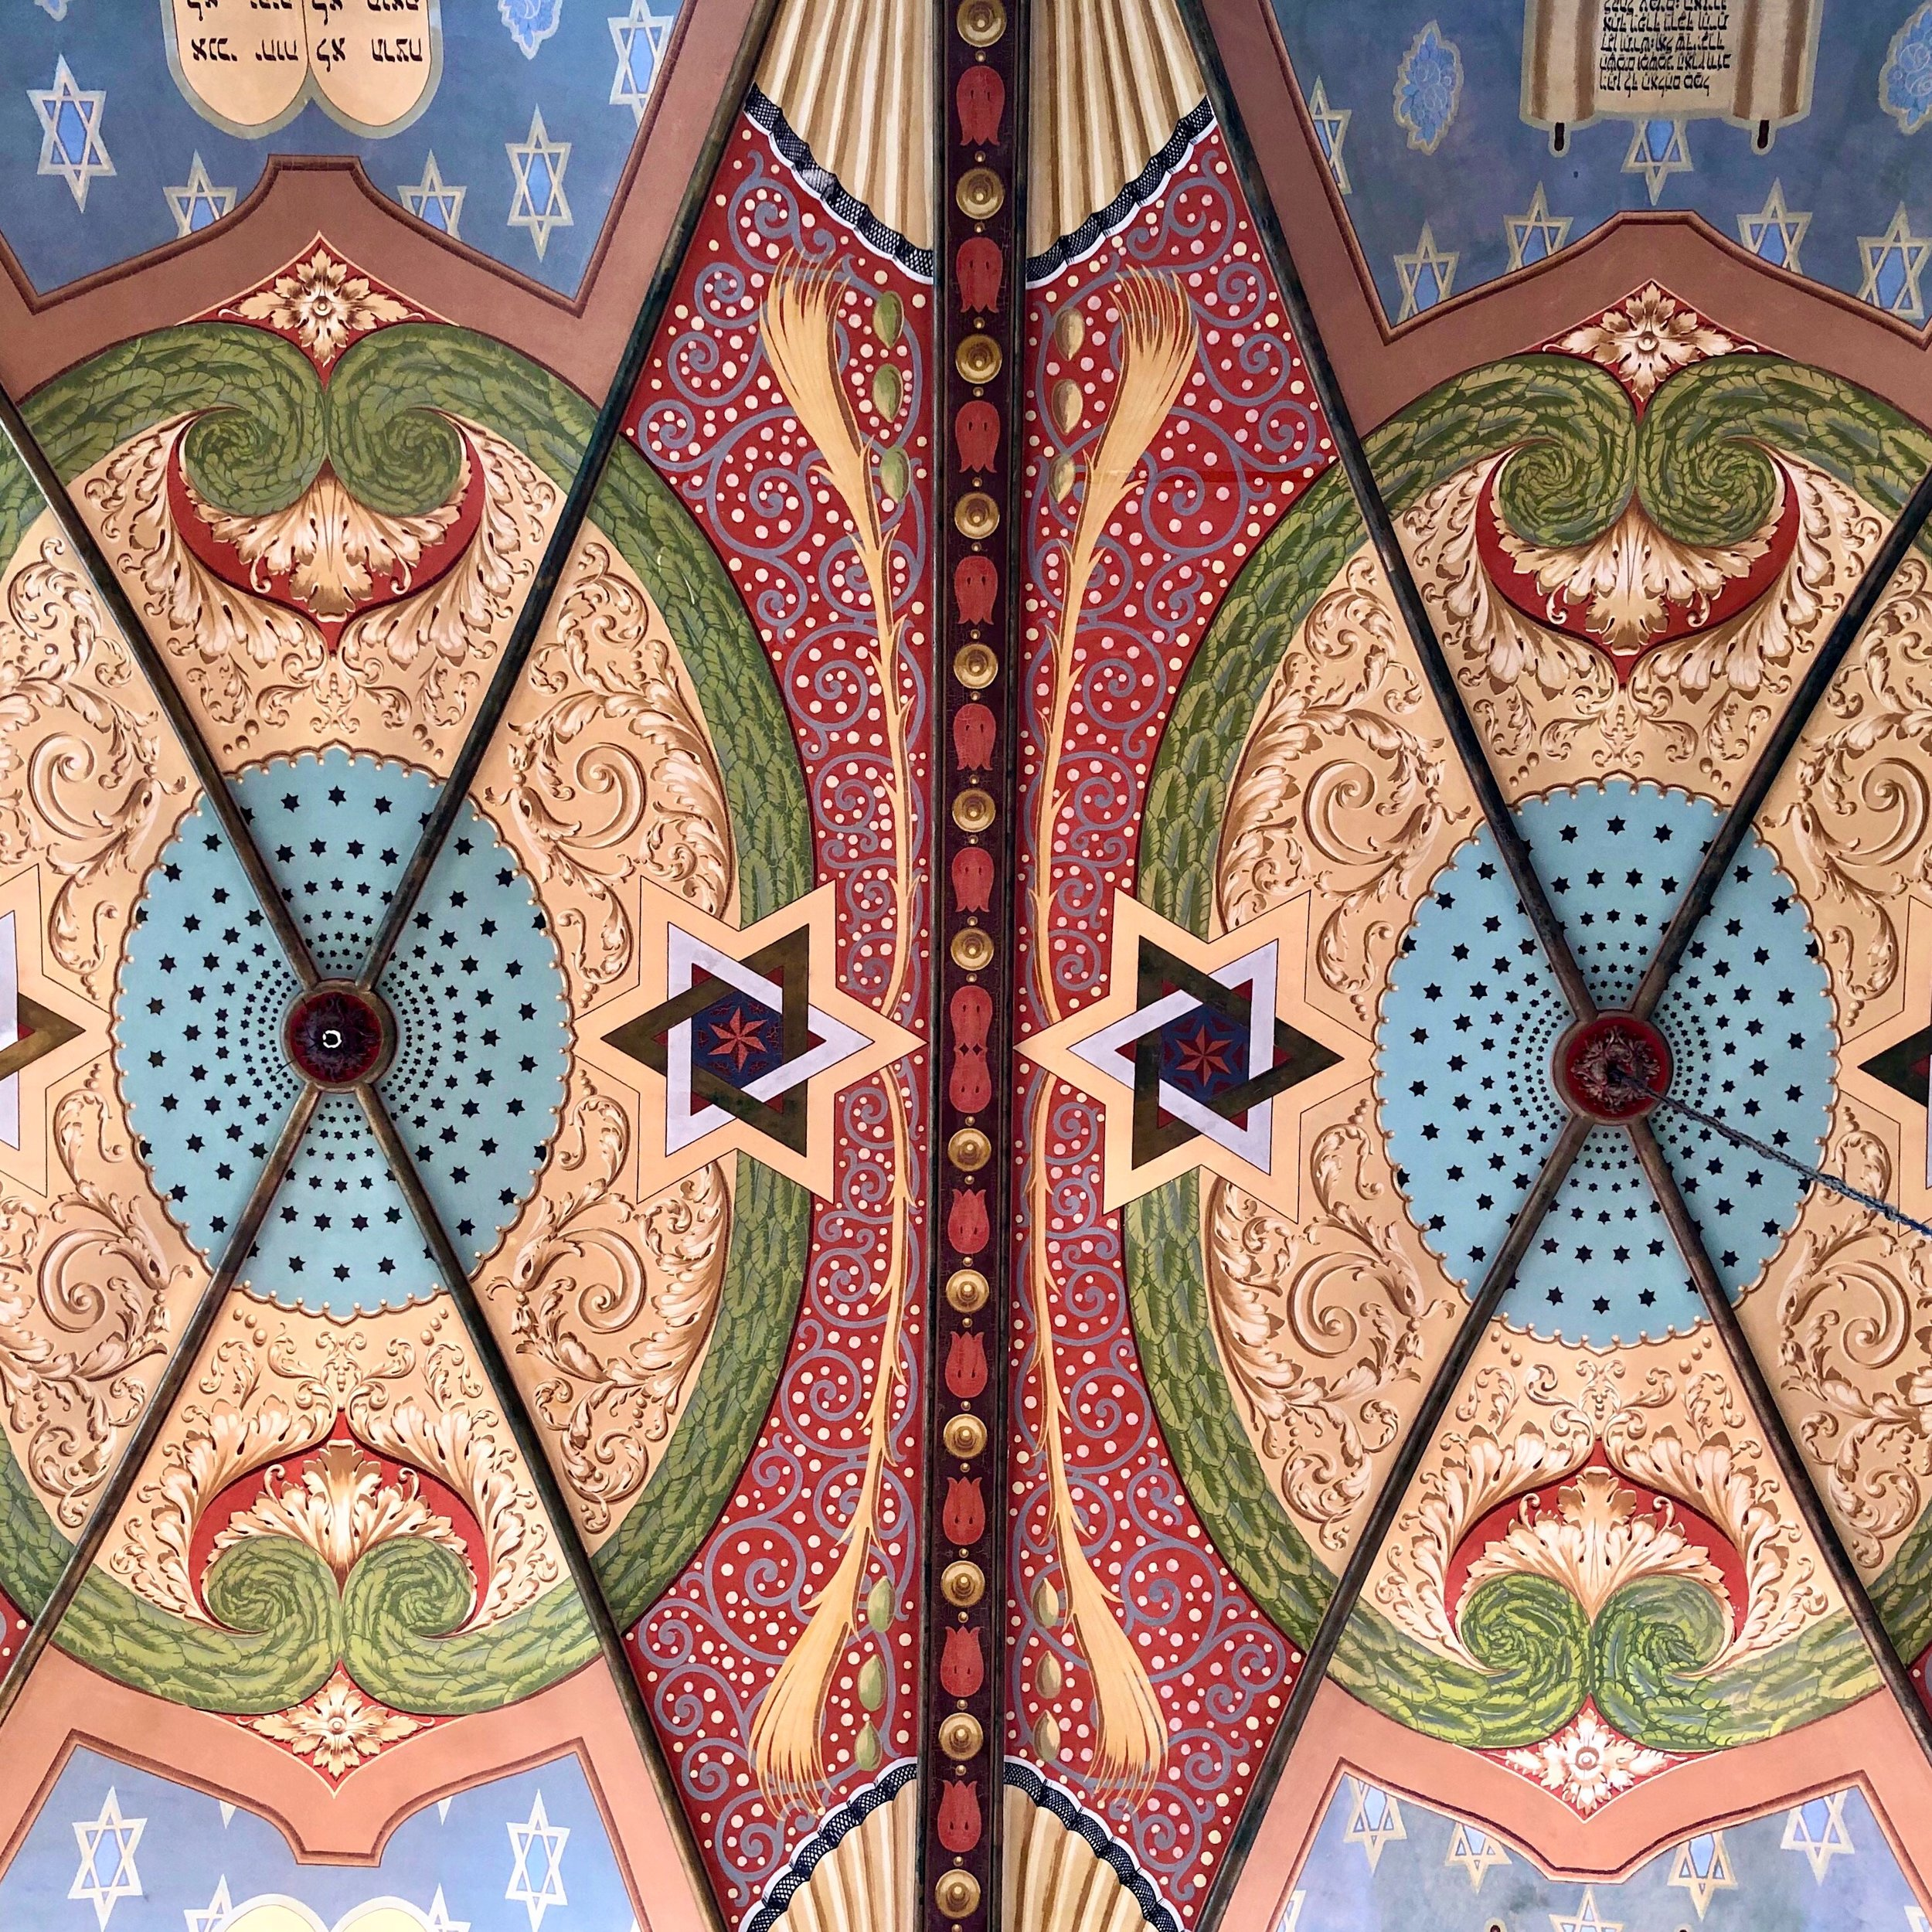 Look up to see the folk art-styled ceiling, with its gorgeous color pallette